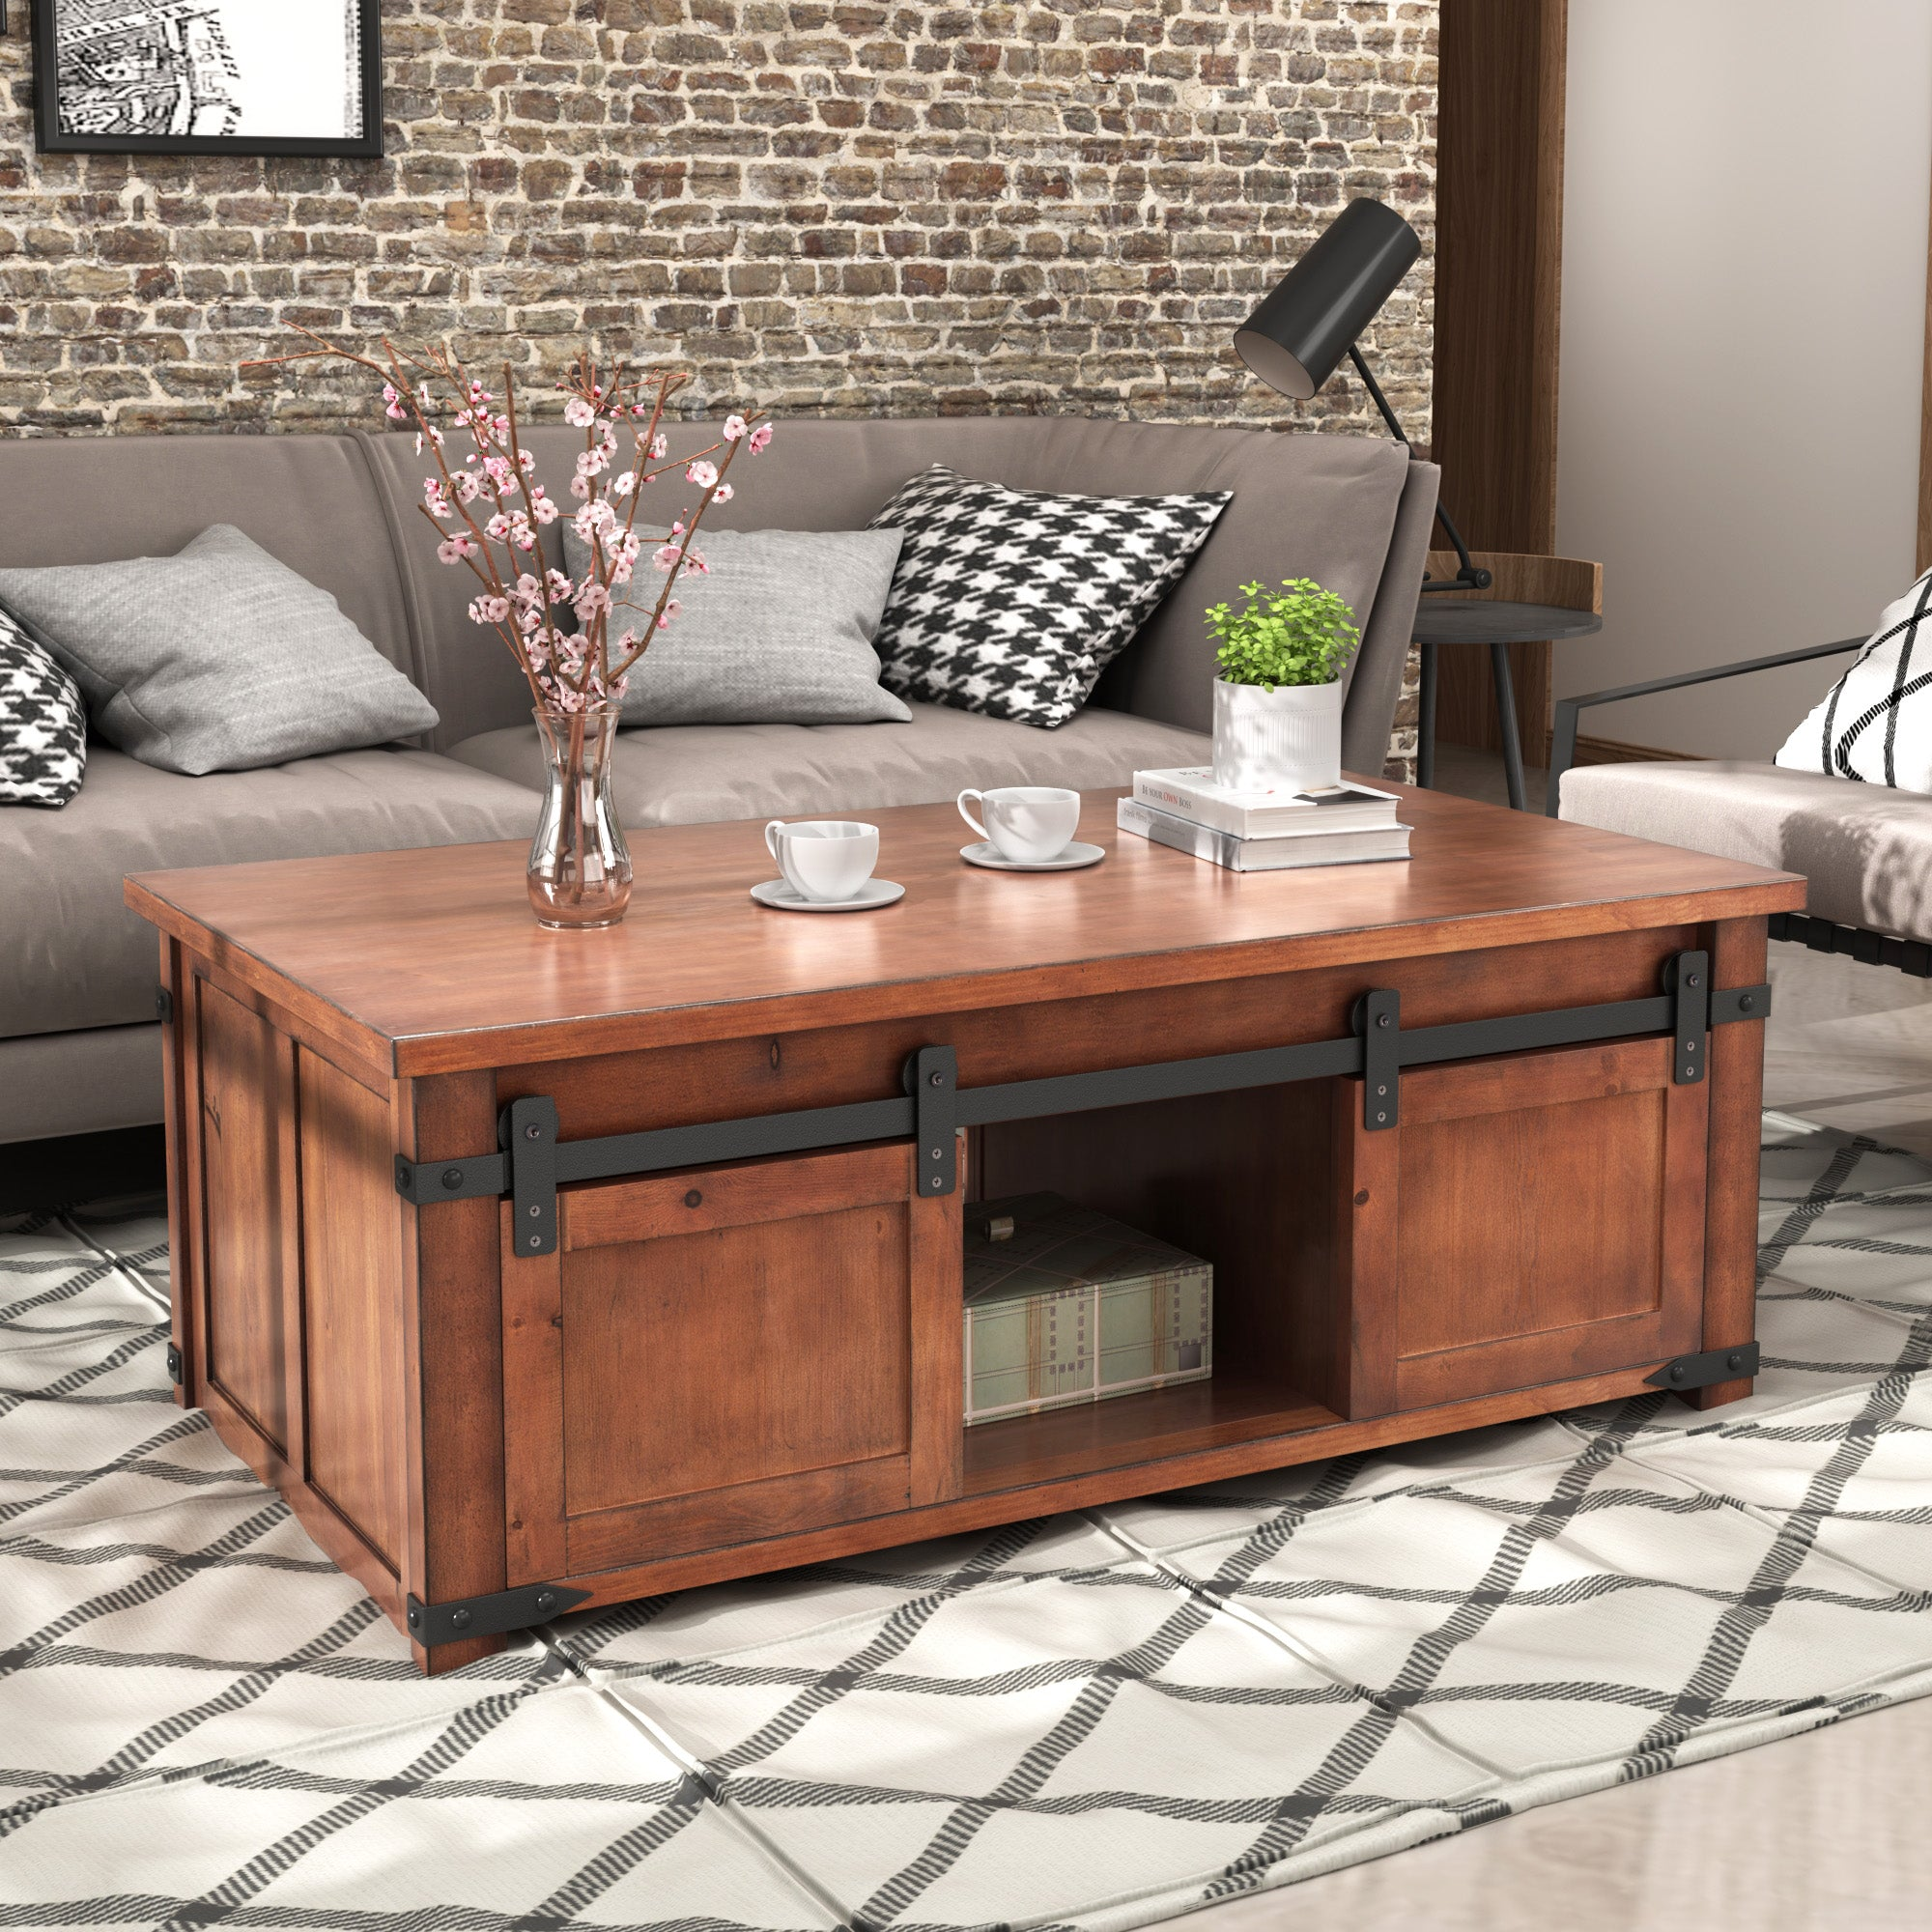 Solid Wood Coffee Table with Storage